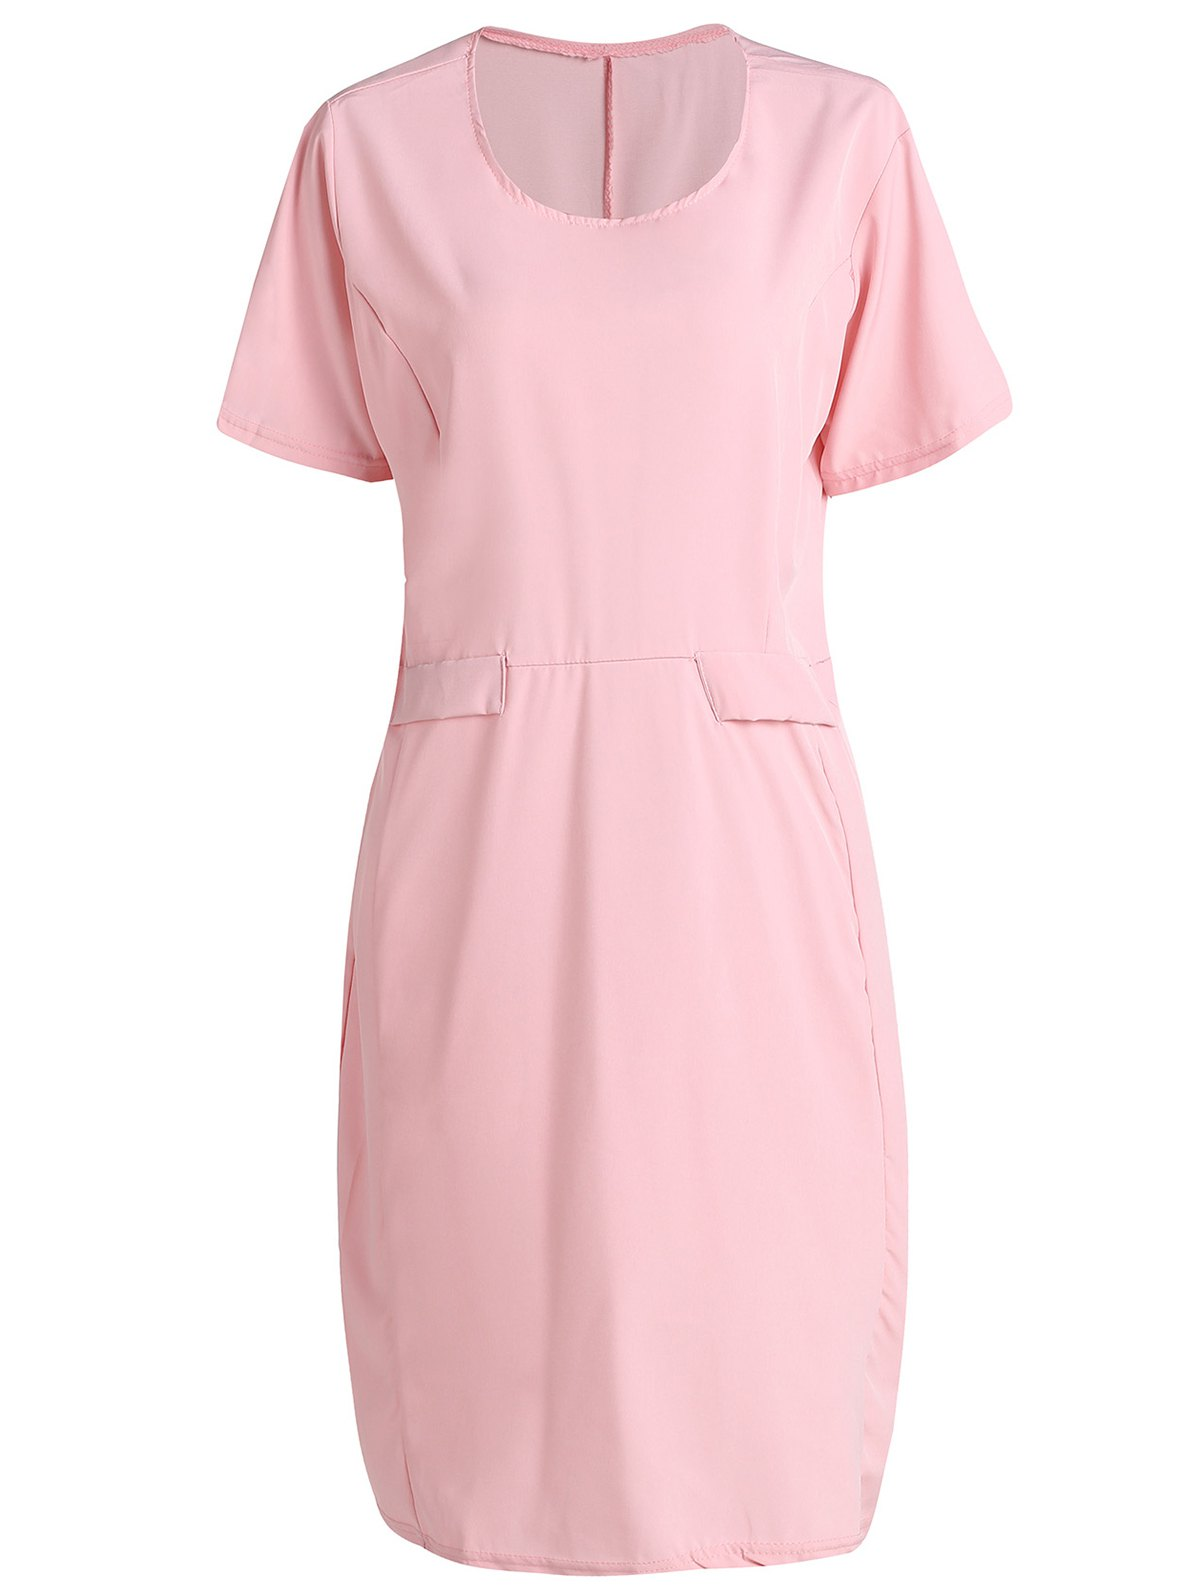 Graceful Pink Round Collar Short Sleeve Dress For Women - PINK XL